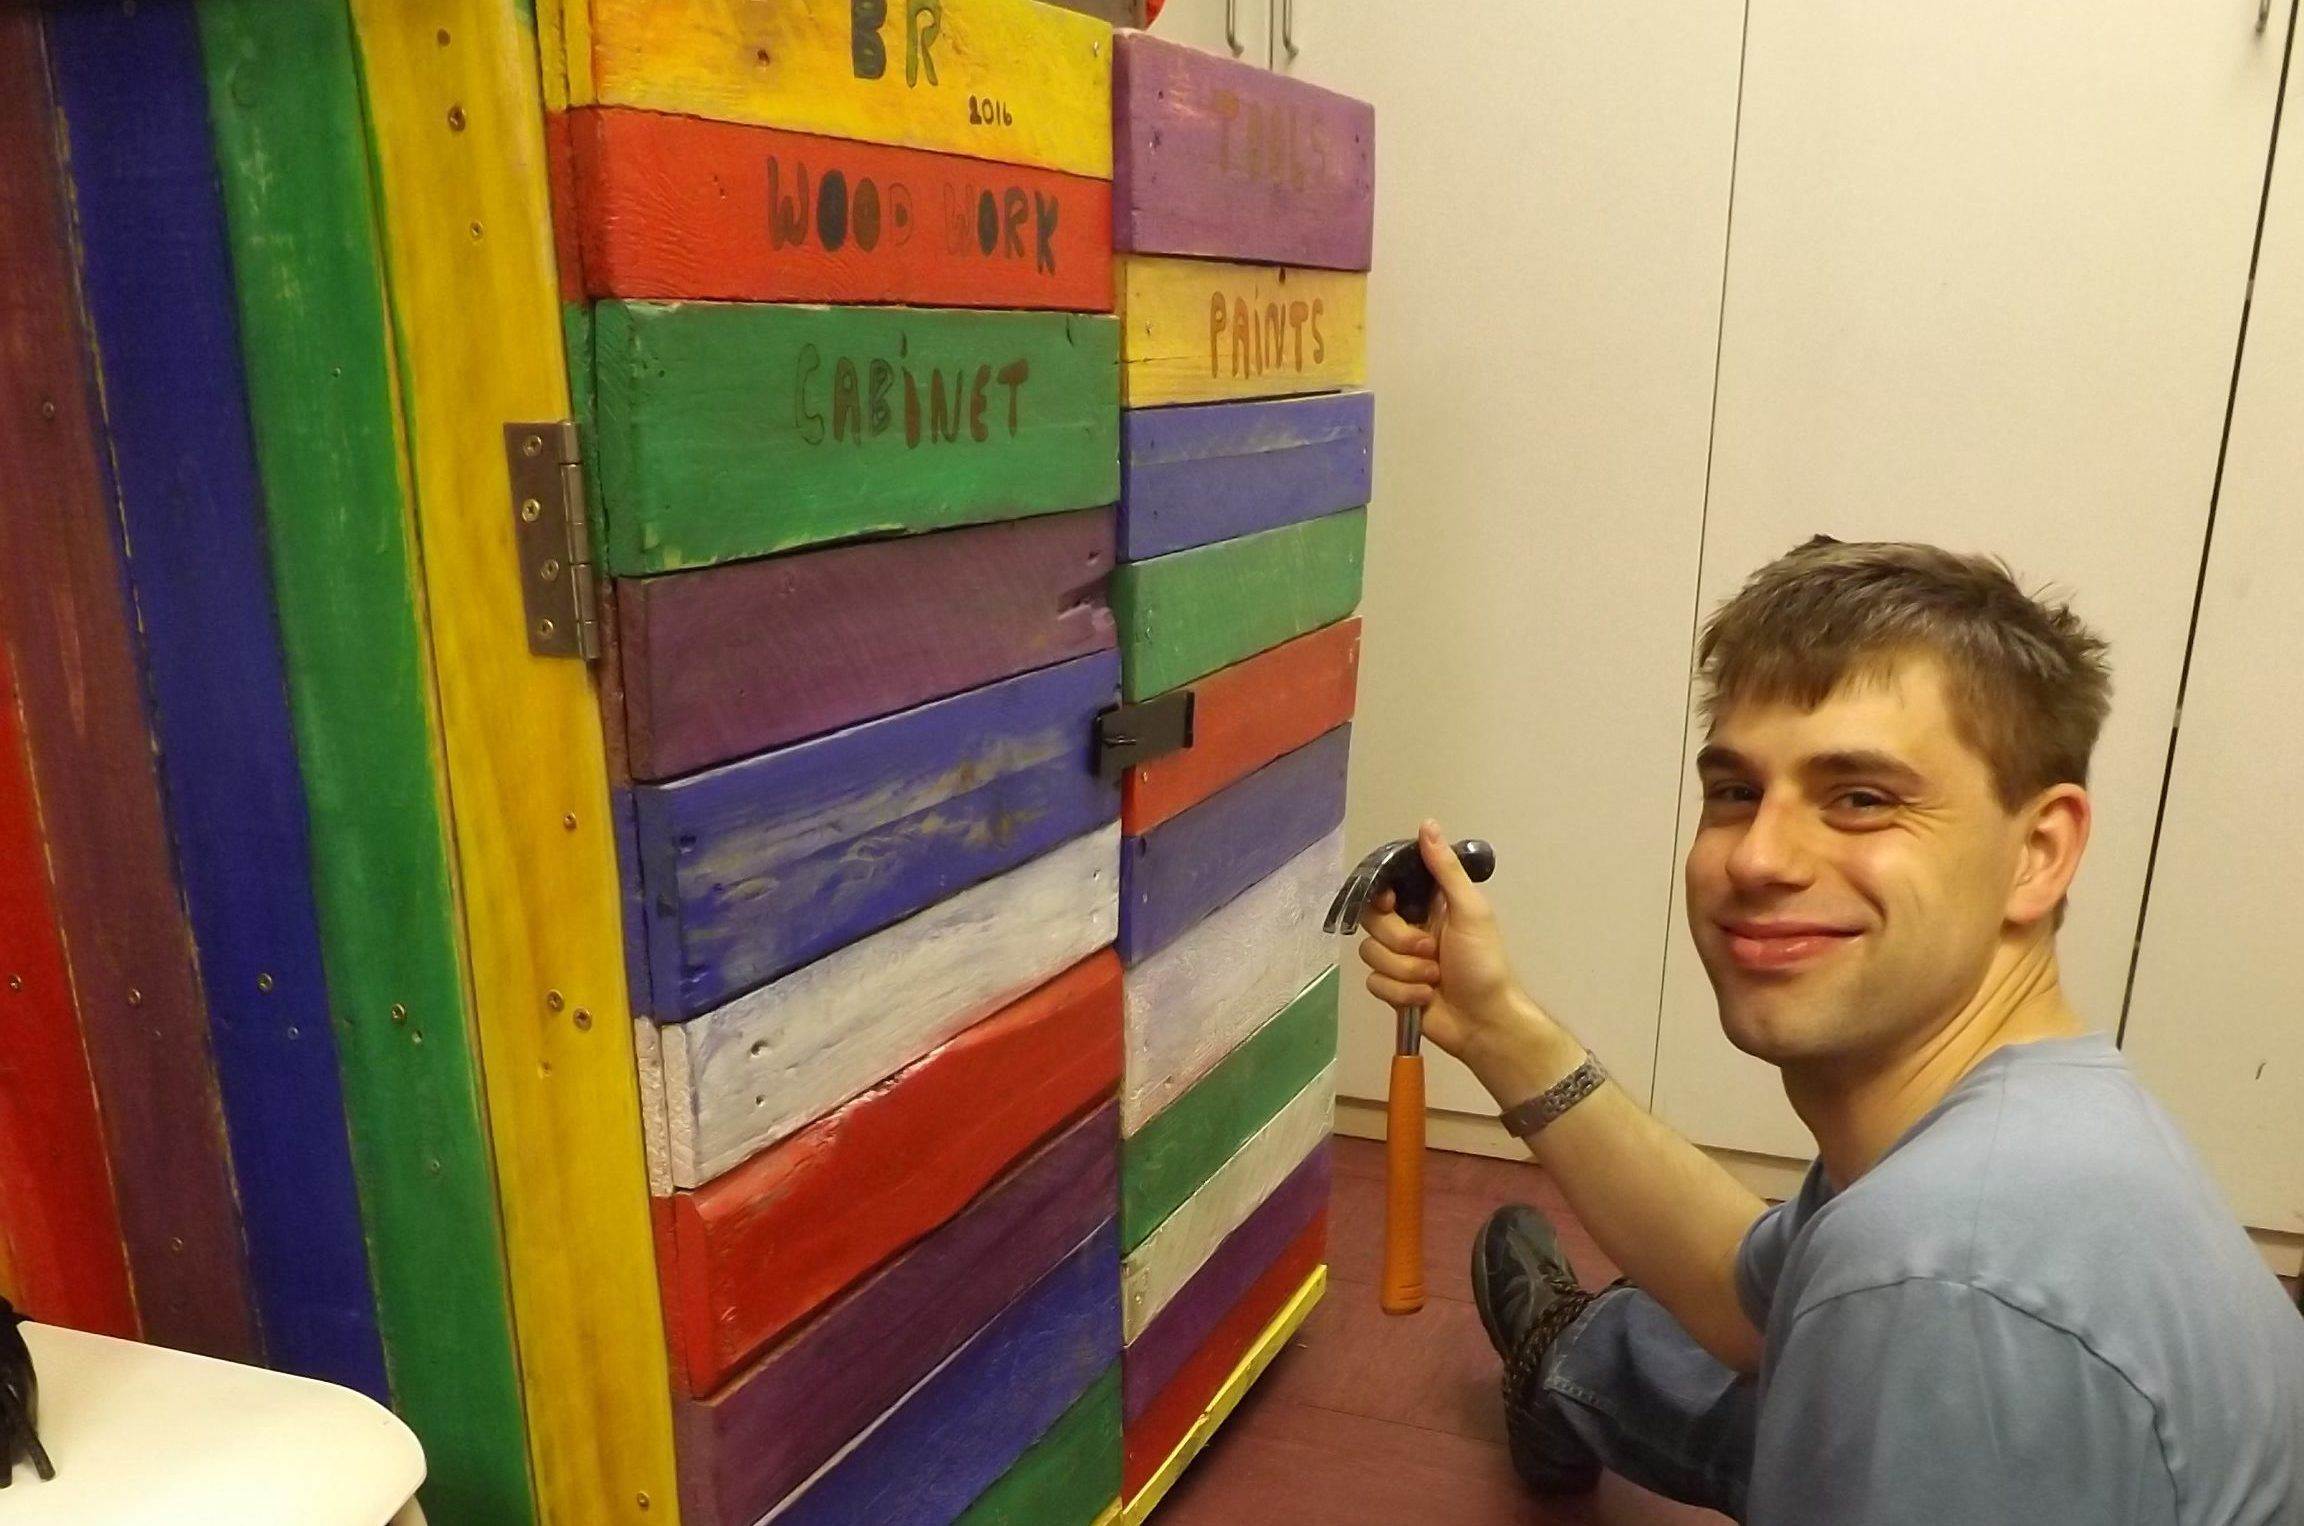 Man with learning disabilities kneeling down holding a hammer next to a cabinet